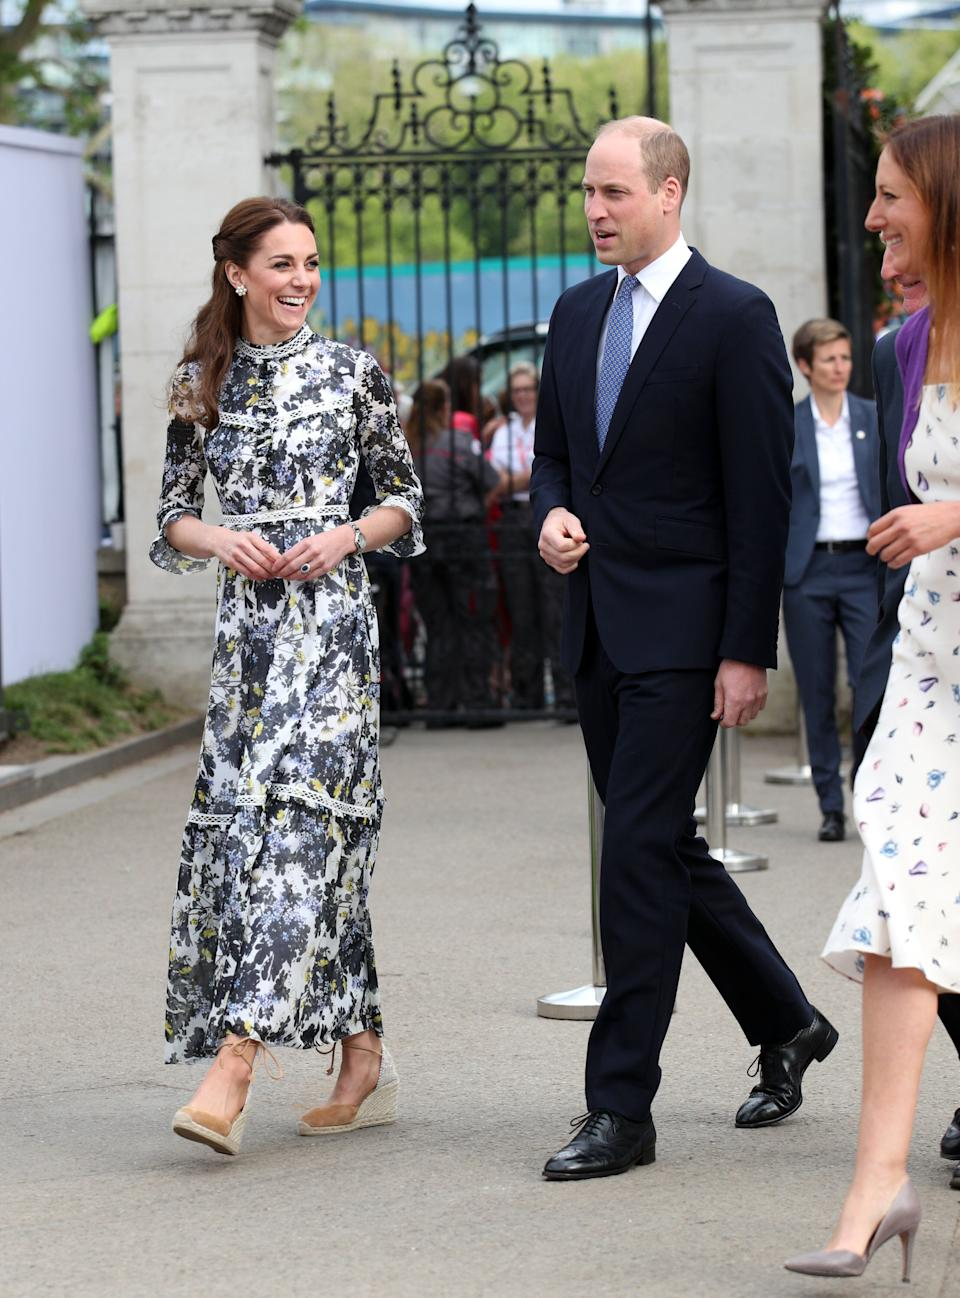 The duke and duchess at the RHS Chelsea Flower Show on May 20.